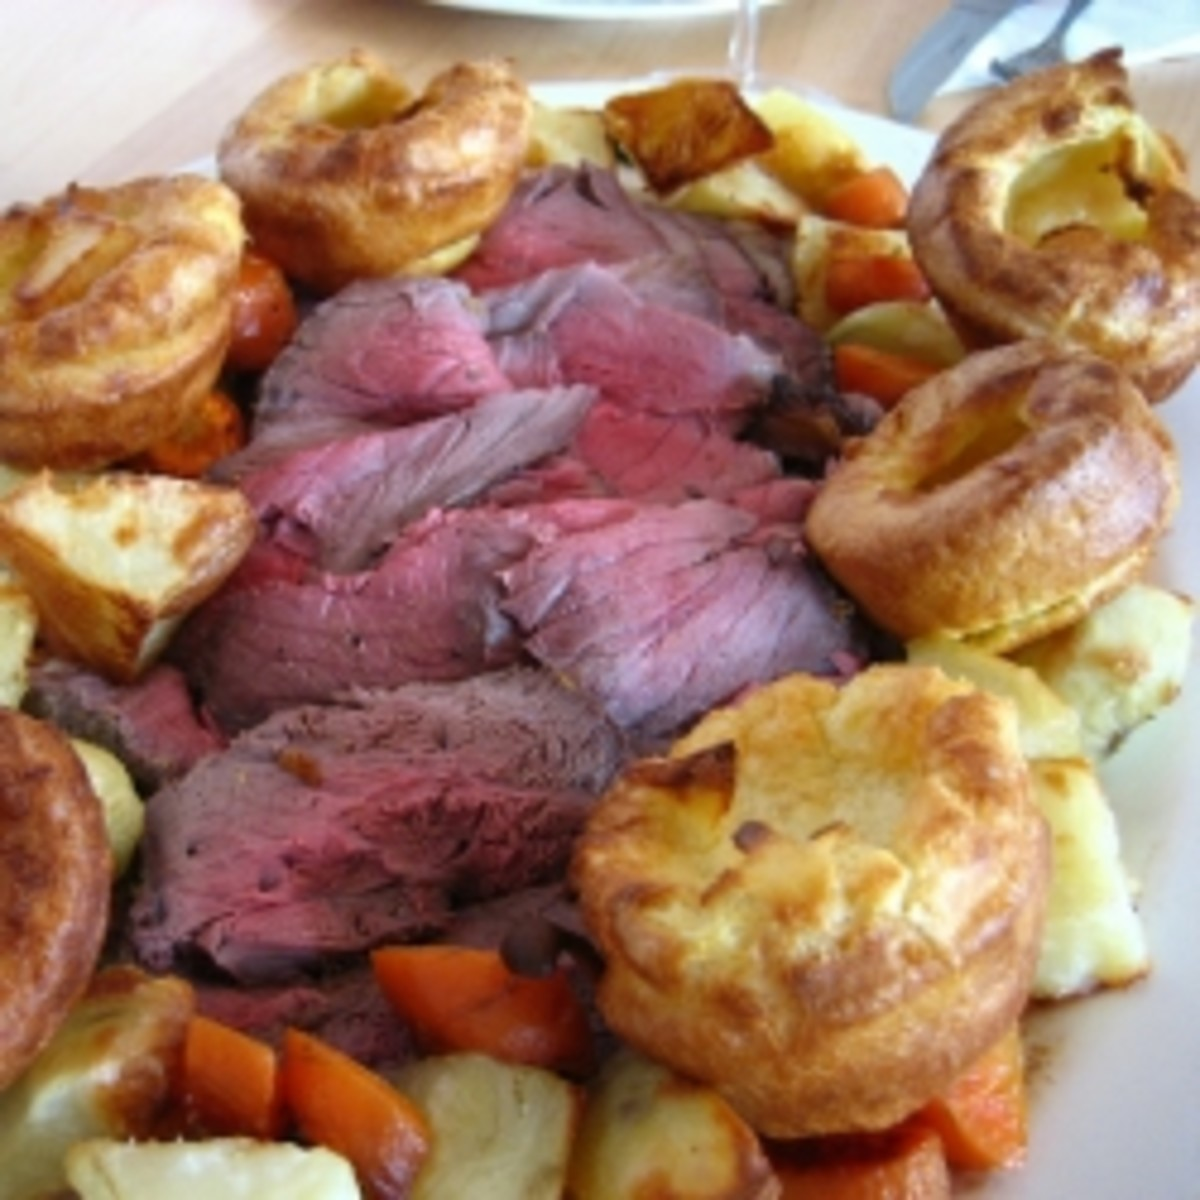 Yorkshire Pudding - How do you eat yours?